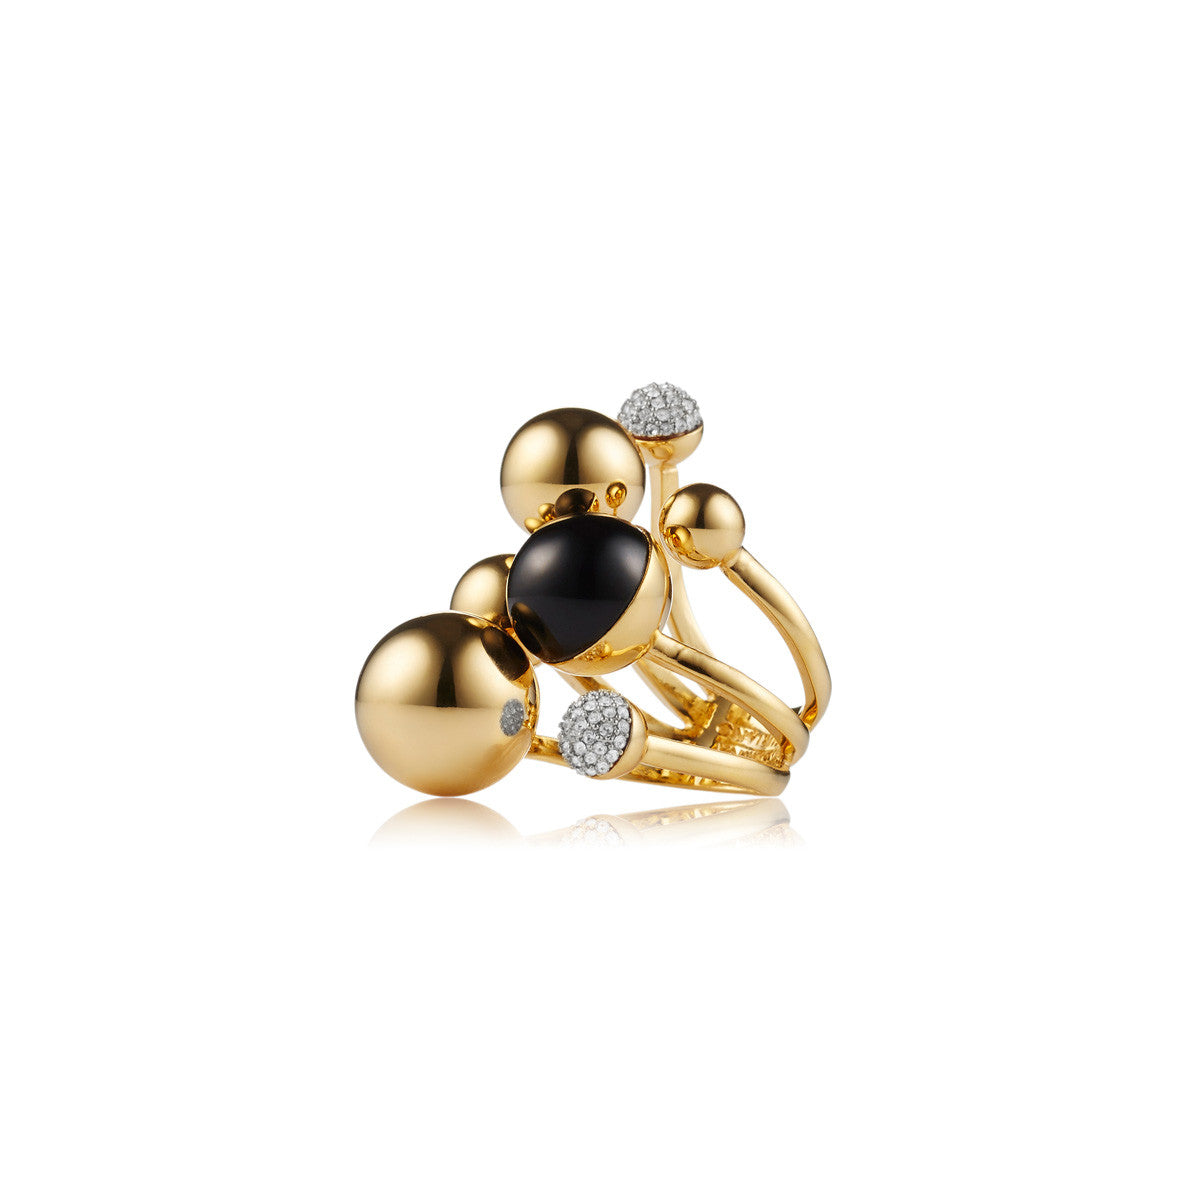 Solid brass, 18K gold plated Stellatus ring is adorned with clusters of gleaming metal, black onyx and Swarovski® crystal pavè spheres – side